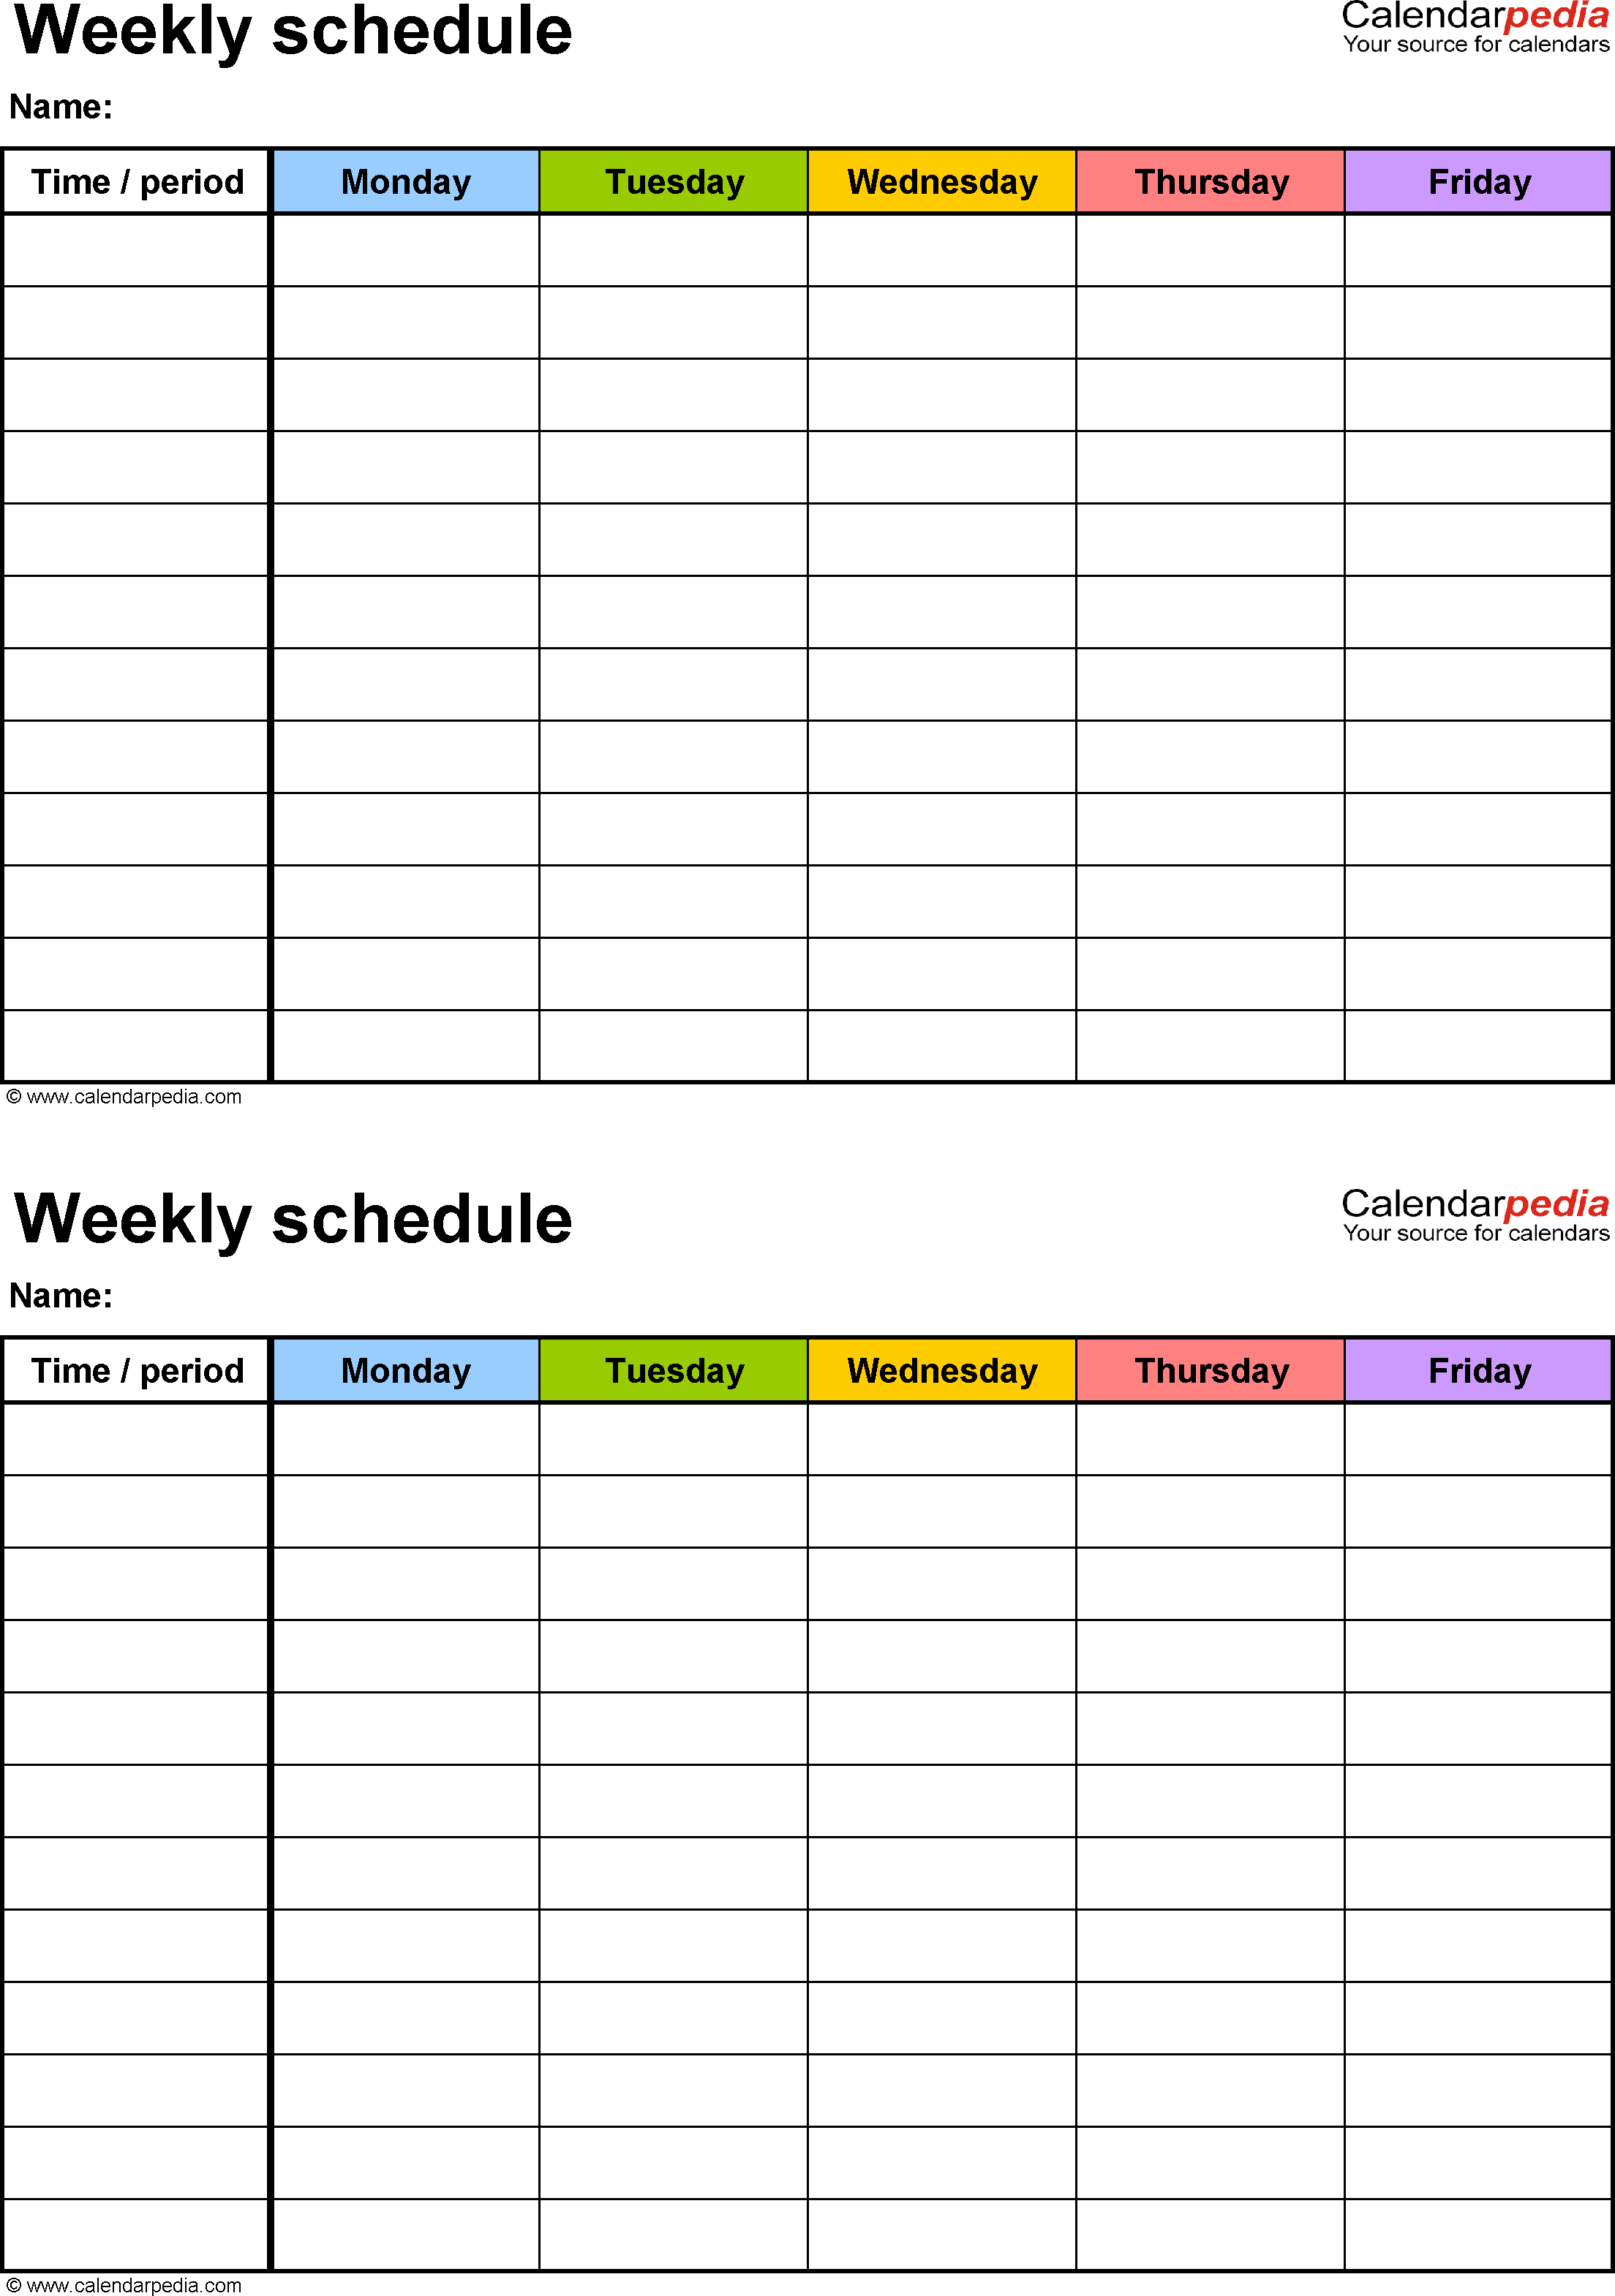 Free Weekly Schedule Templates For Word - 18 Templates with Printable 2 Week Calendar Template